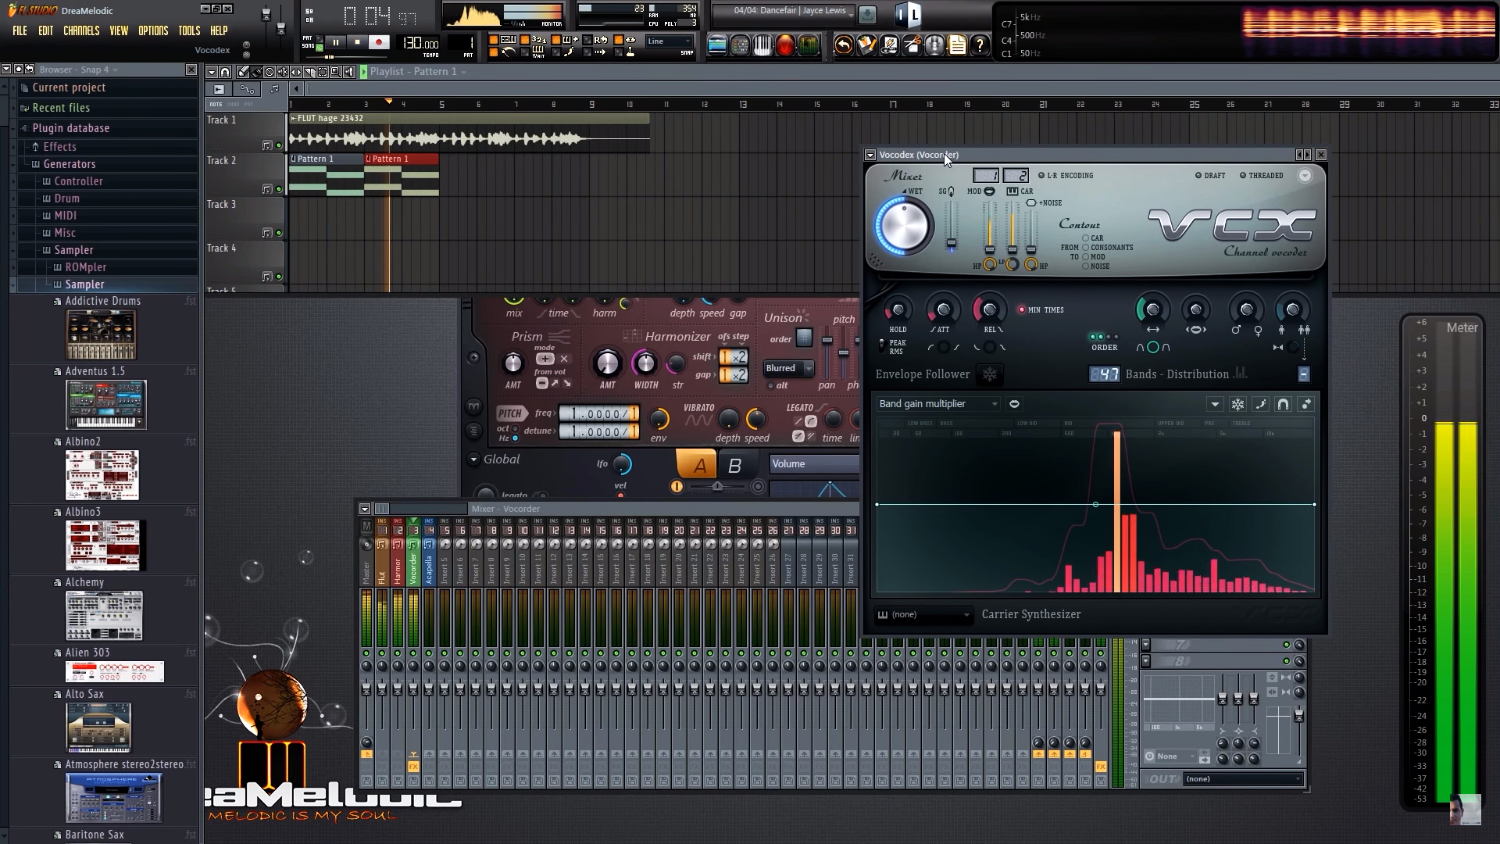 FL_Studio_-_How_to_connect_to_MIDI_FX_edited